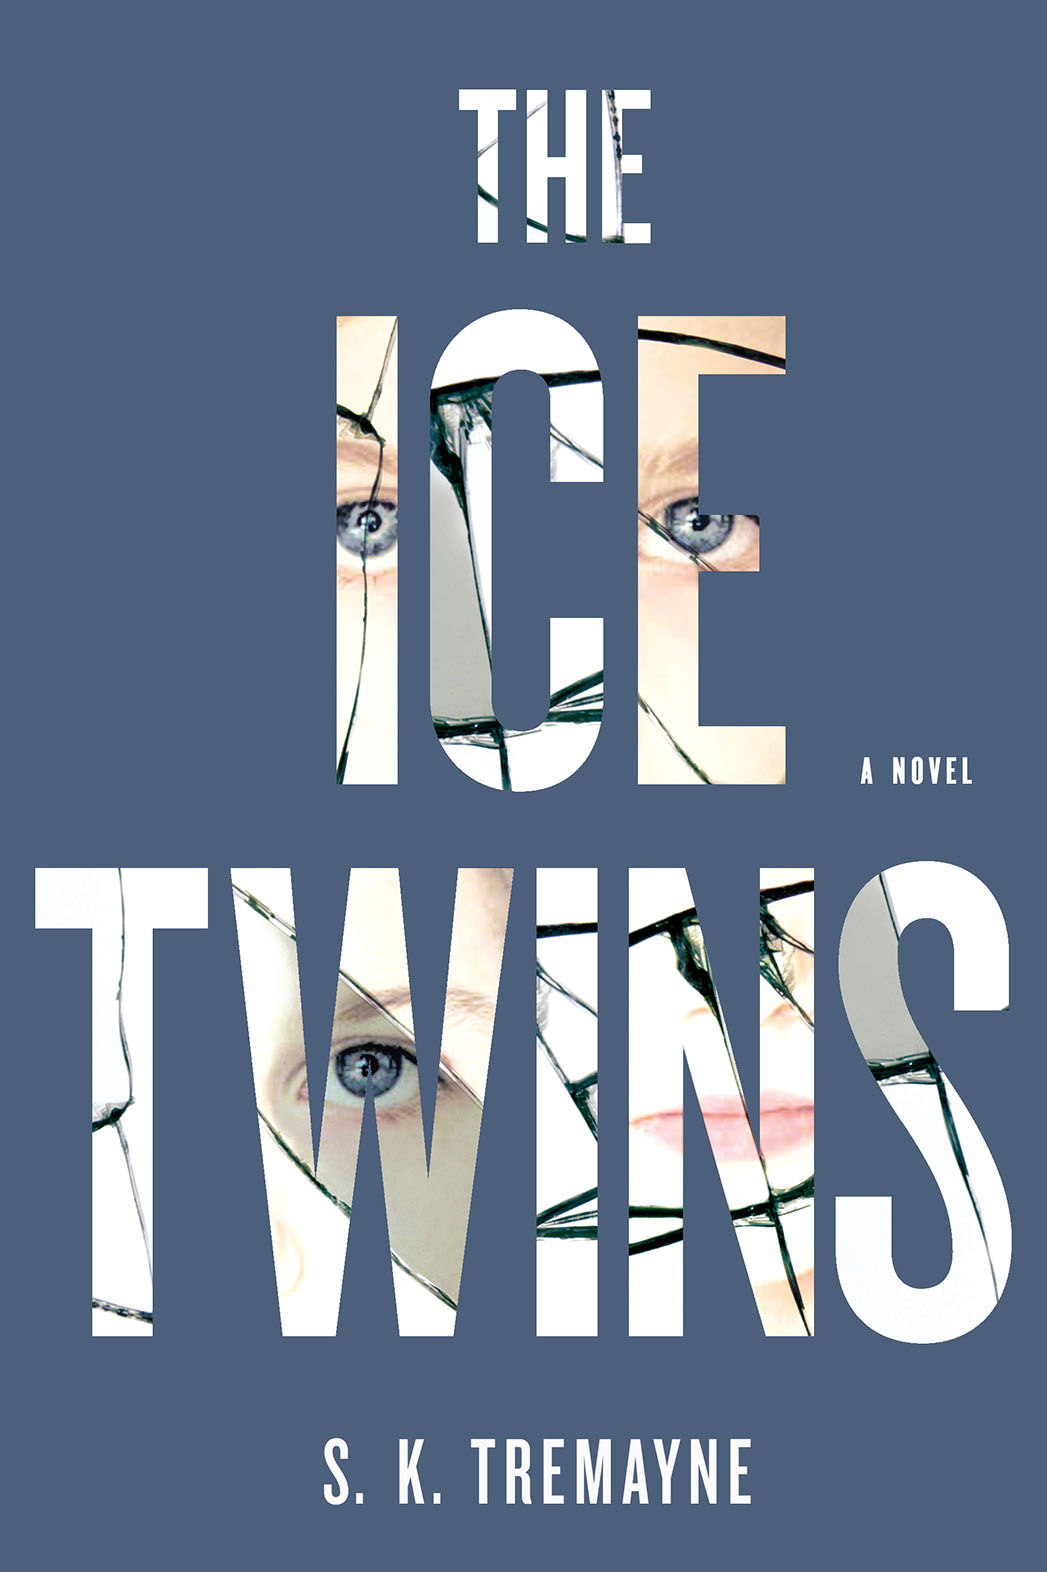 S. K. Tremayne's The Ice Twins Book Cover - P 2016